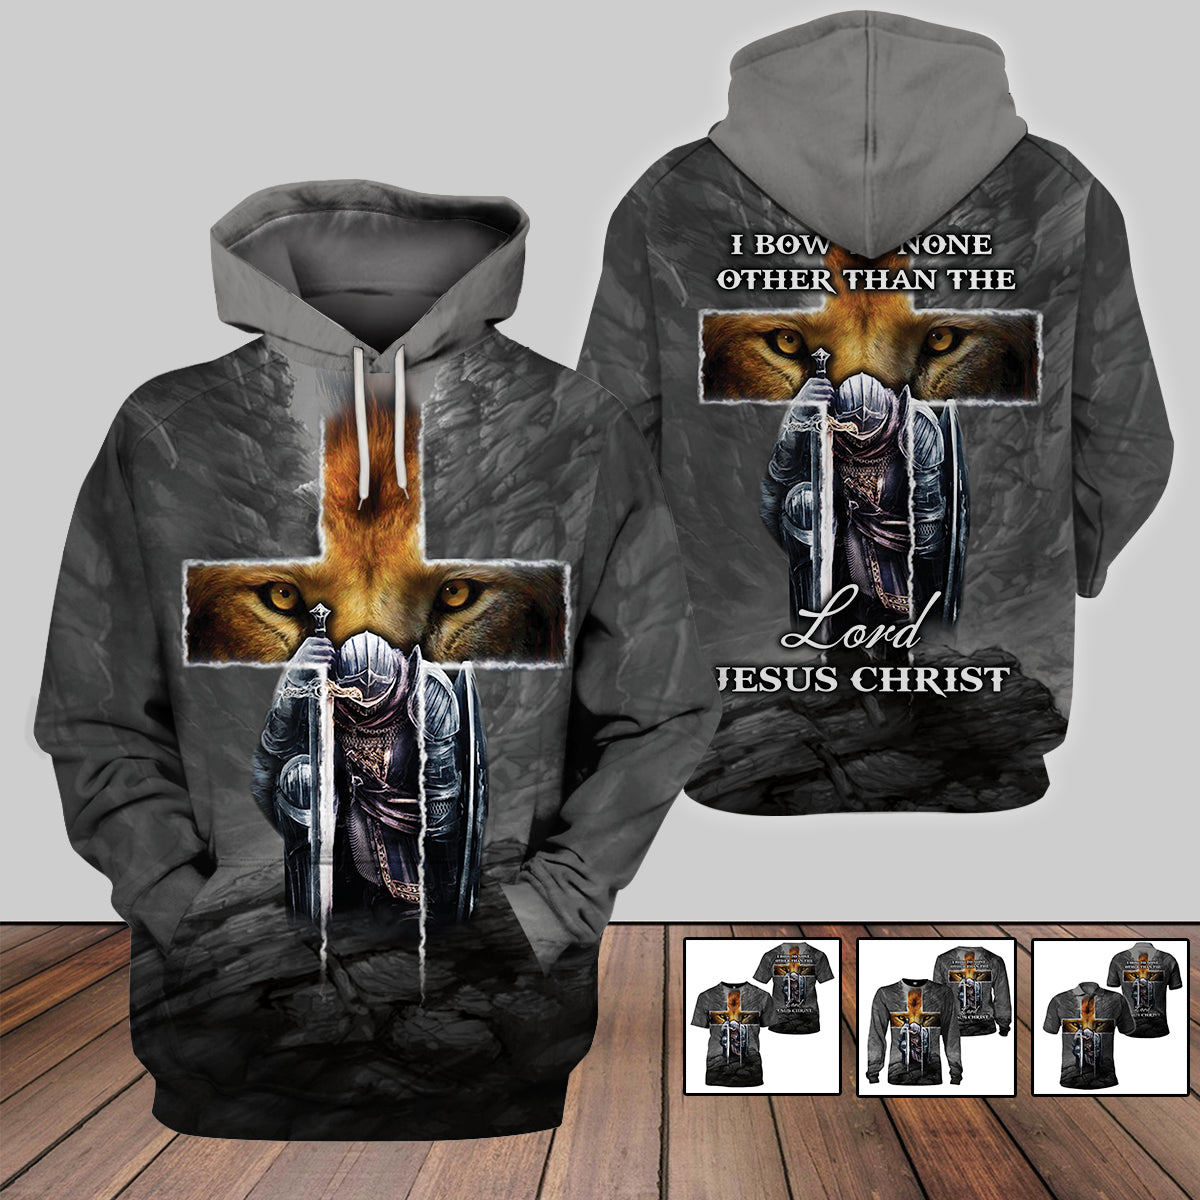 3D Full Print Apparel - I Bow To None Other Than The Lord Jesus Christ